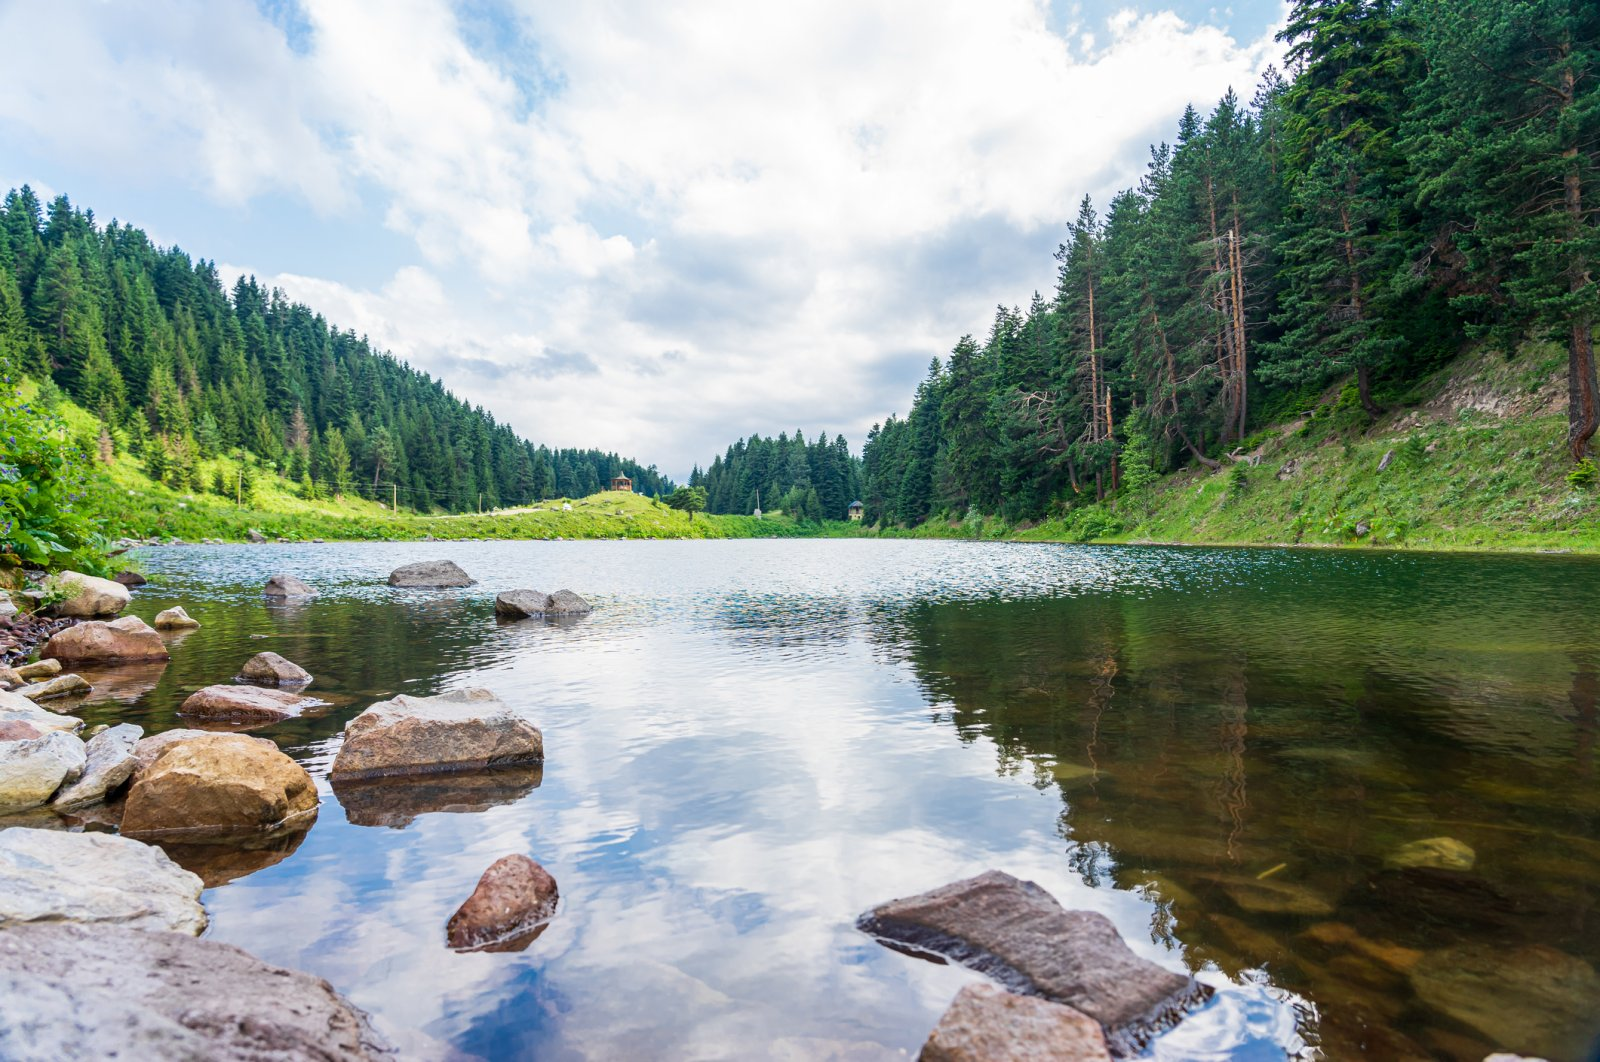 Artvin is one of the greenest provinces in Turkey. (iStock Photo)